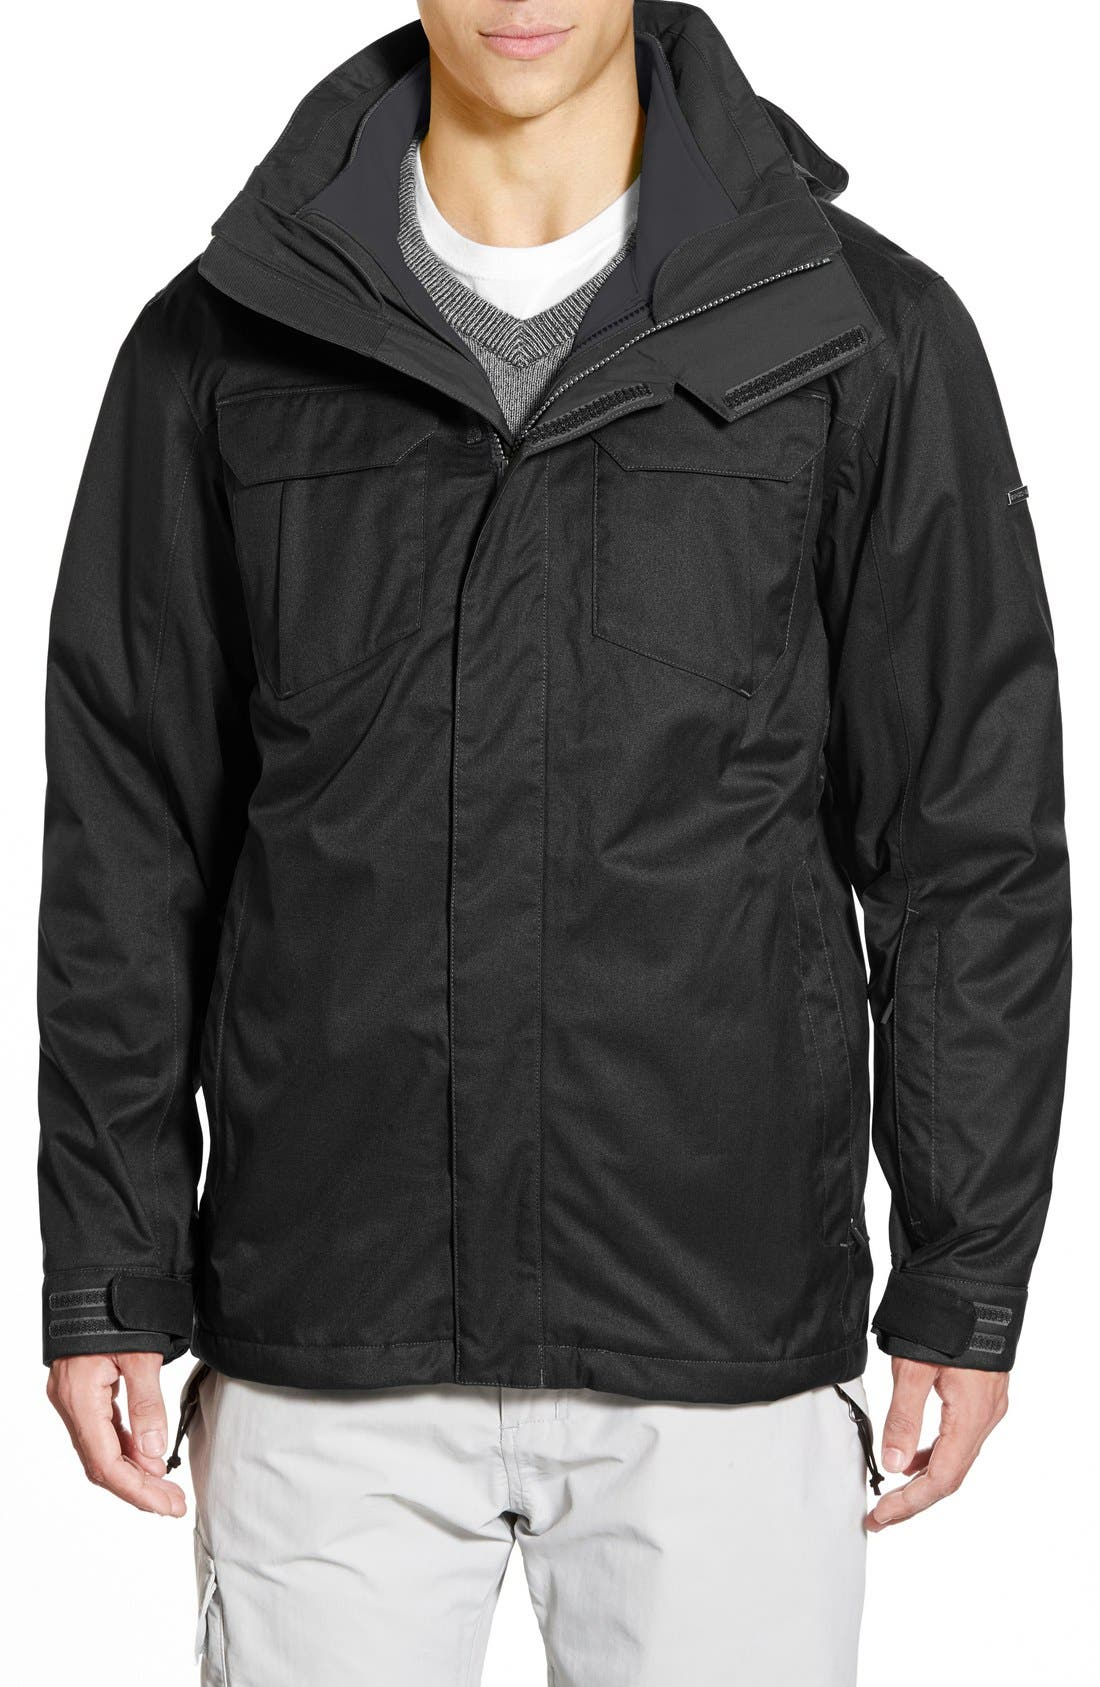 THE NORTH FACE,                             TriClimate<sup>®</sup> 3-in-1 Jacket,                             Main thumbnail 1, color,                             001